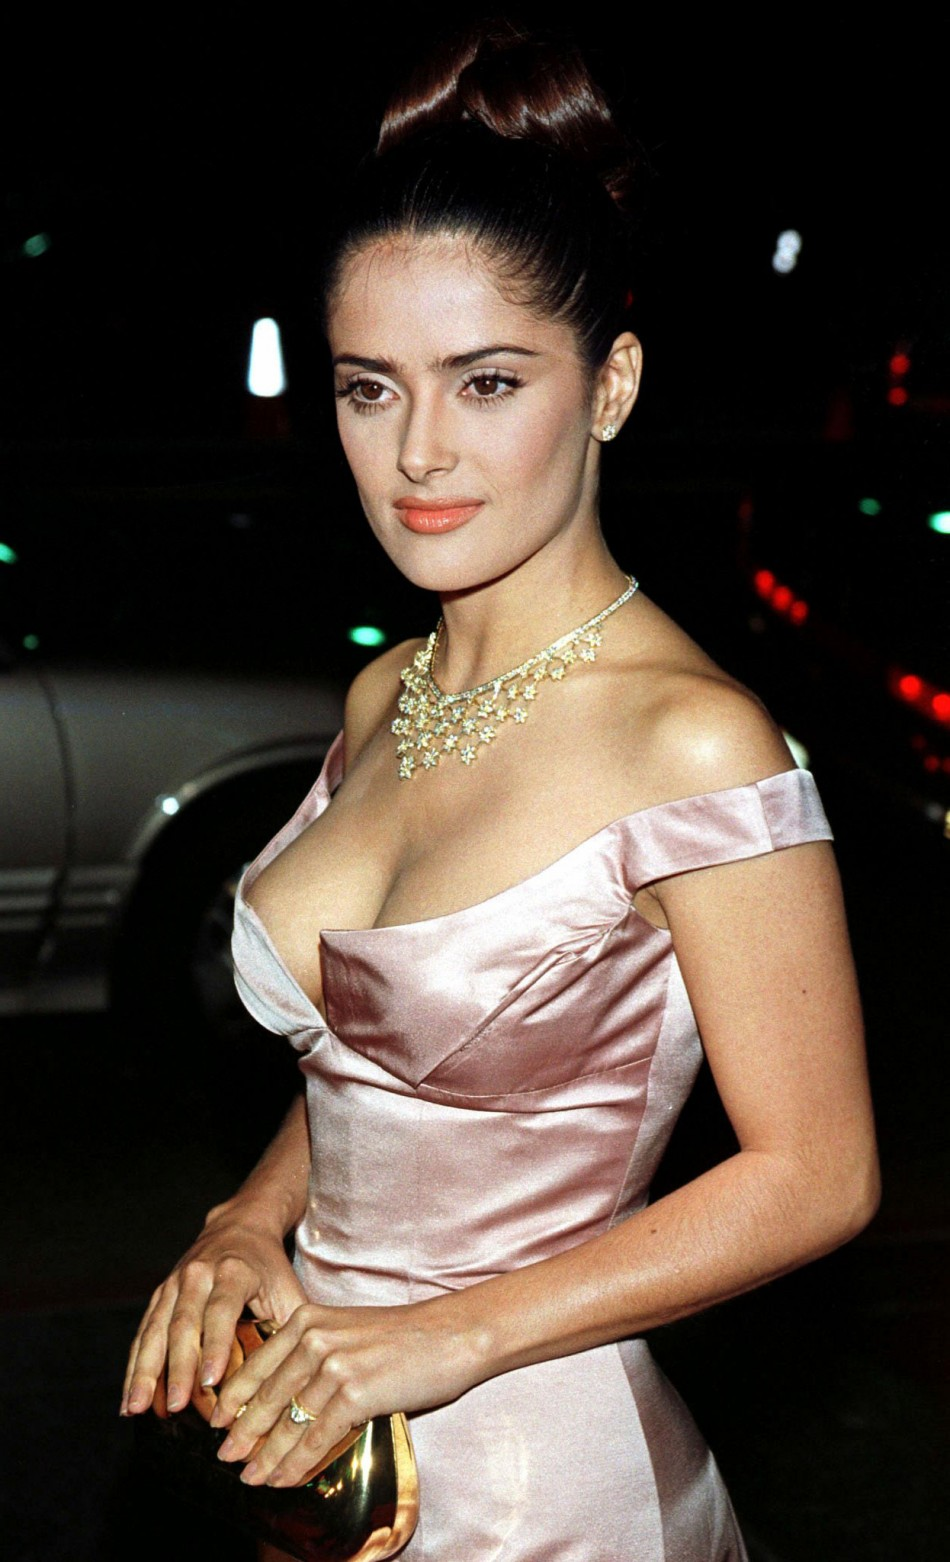 actress Hot pic mexican